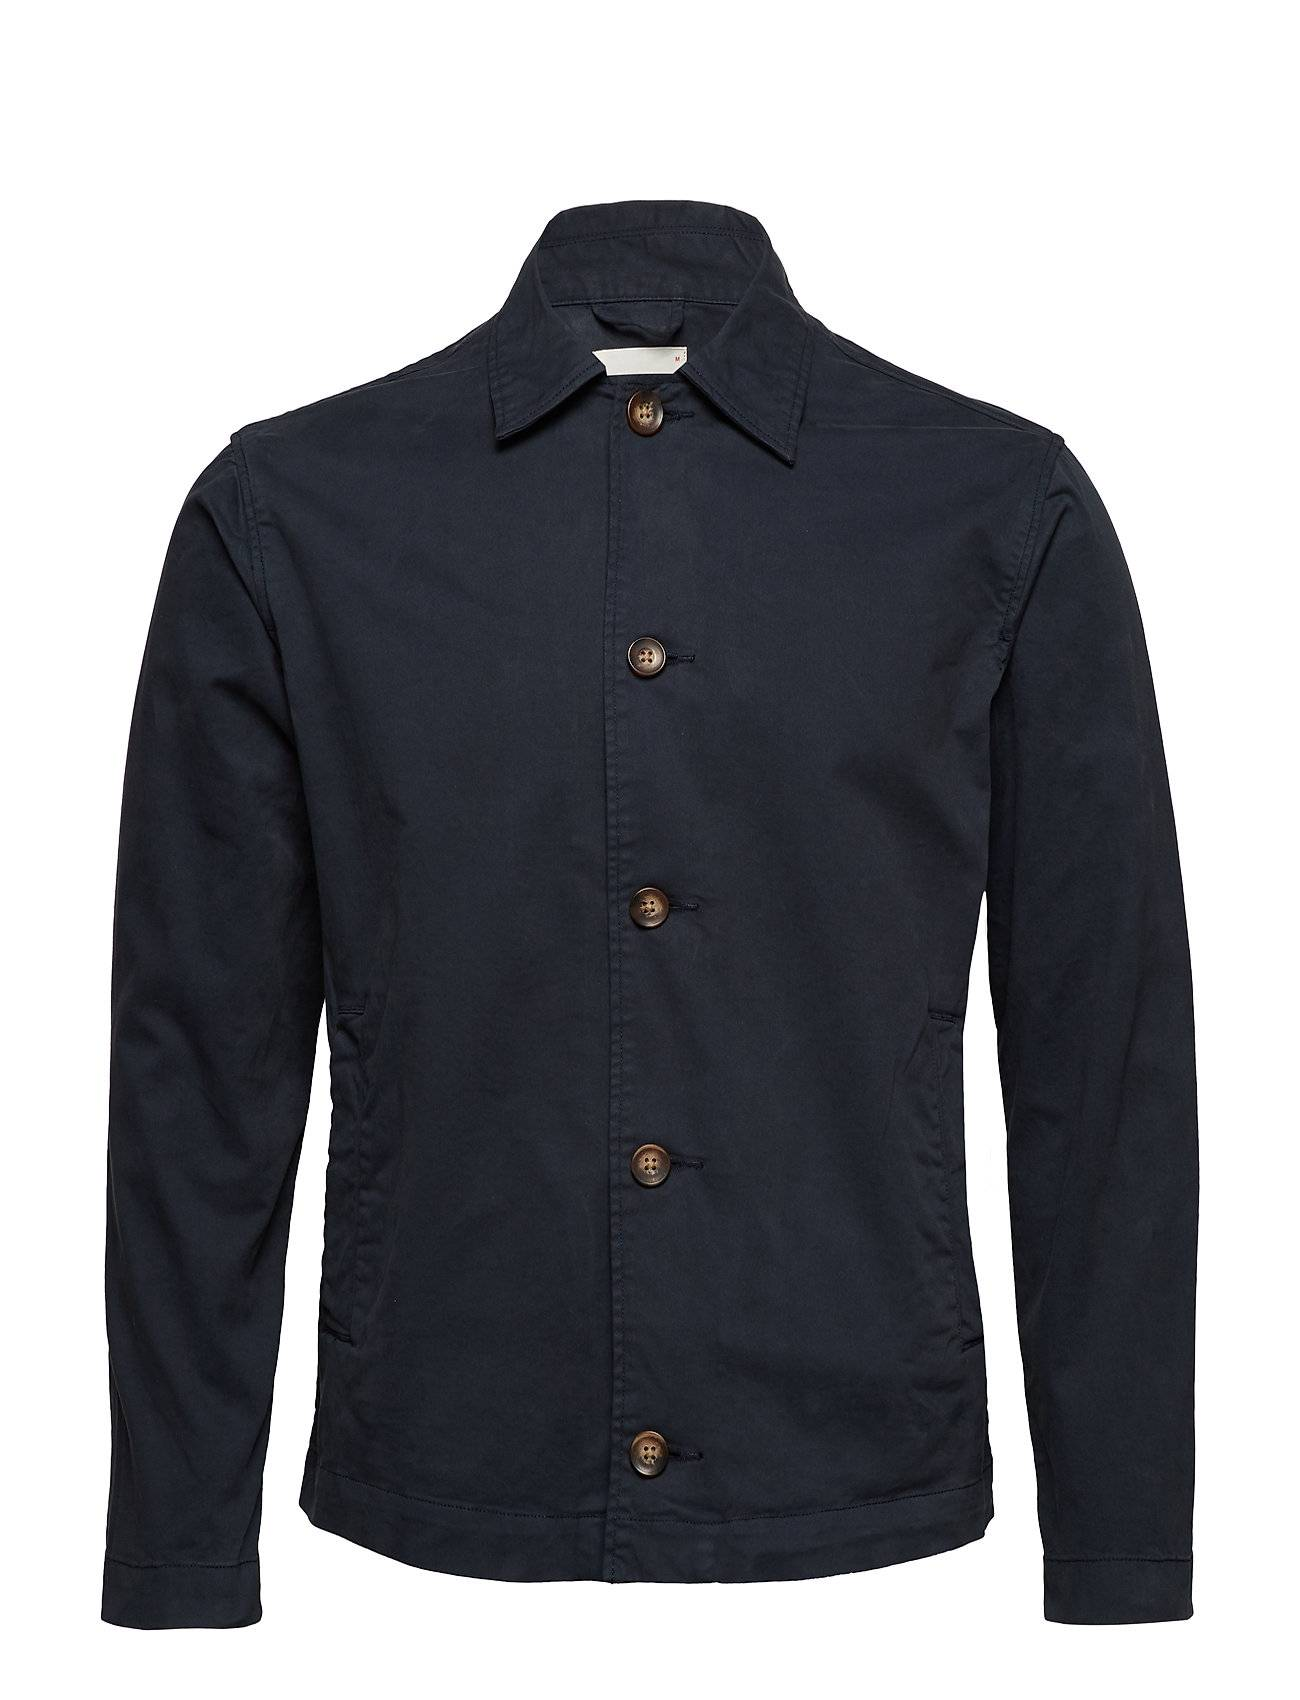 Knowledge Cotton Apparel Stretched Overshirt - Gots/Vegan